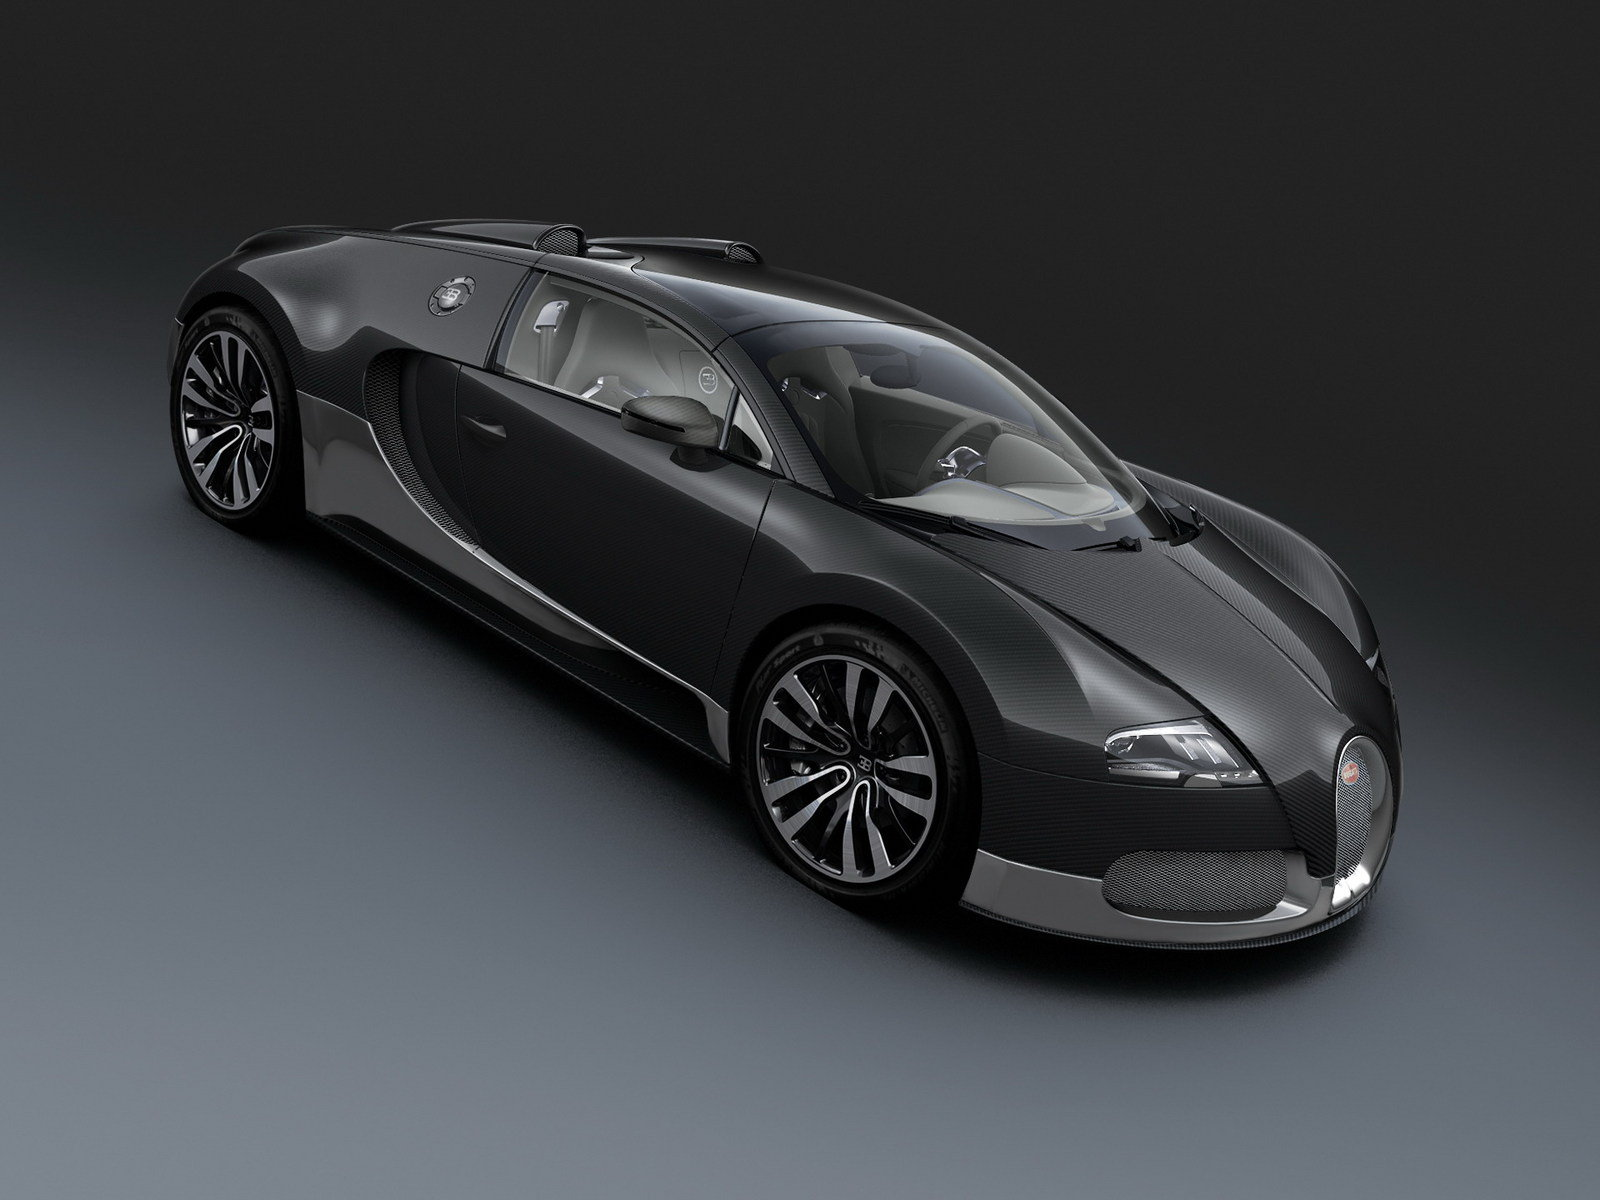 2010 bugatti veyron grand sport grey carbon review top speed. Black Bedroom Furniture Sets. Home Design Ideas